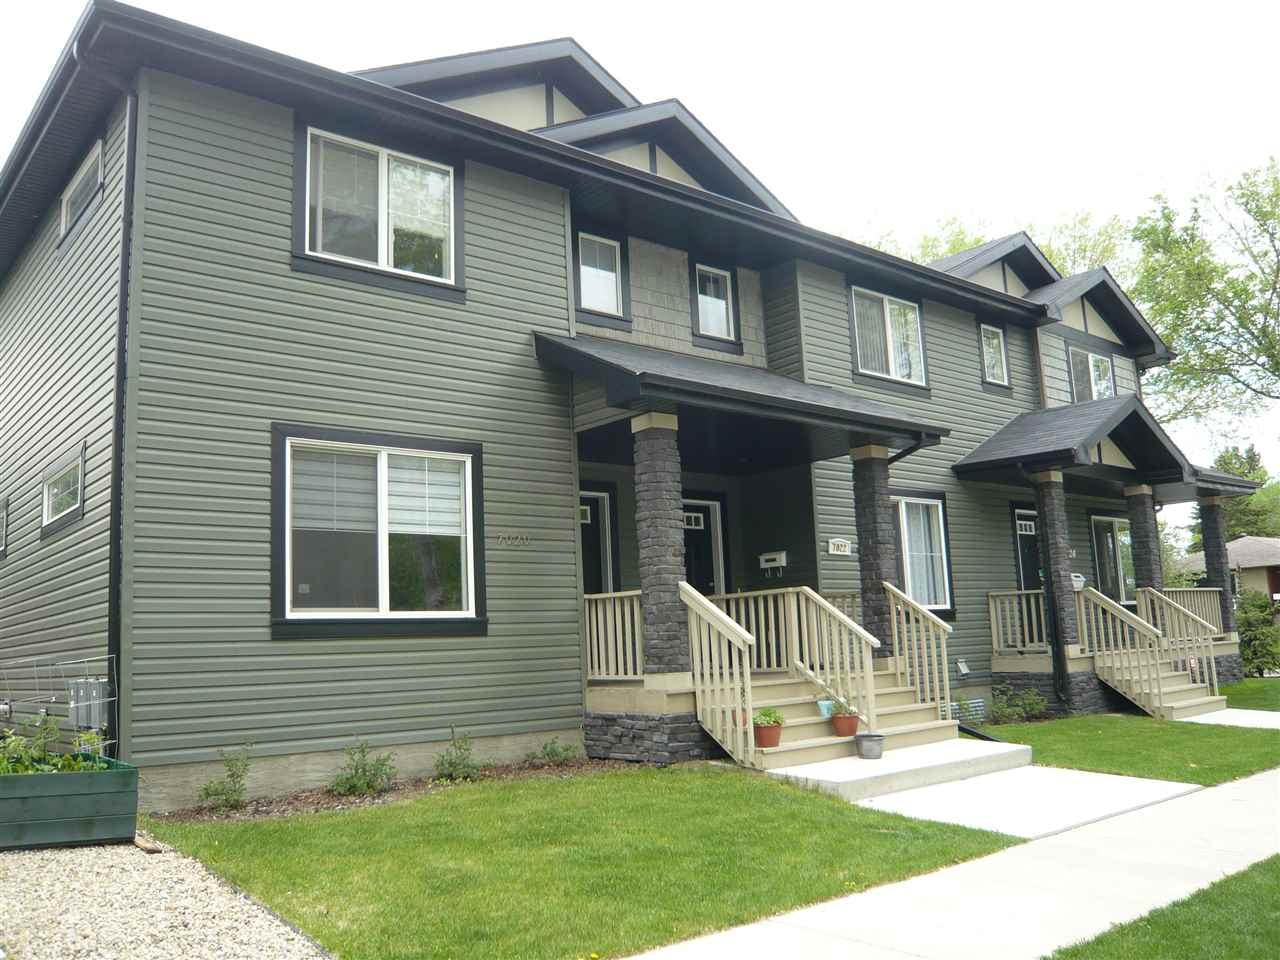 Clean and Bright 2 storey. Great floor plan. Near New Tri-Plex, infill in Hazeldean. Open kitchen, eating and living room. 3 good sized bedrooms. 4 pce Ensuite. Hardwood on main. Tile in baths. Granite counters in kitchen, Stainless Steel Appliances. Considered a condo but fees are super low and cover the insurance for the building. Cost efficient center unit. Single Detached Garage parking. Awesome location. Steps to Millcreek Ravine. Quick access to Argyll road or Whyte Ave. Low maint landscape, fully fenced, cute deck and front porch. Quality Building. Curb Appeal. Great place to live!